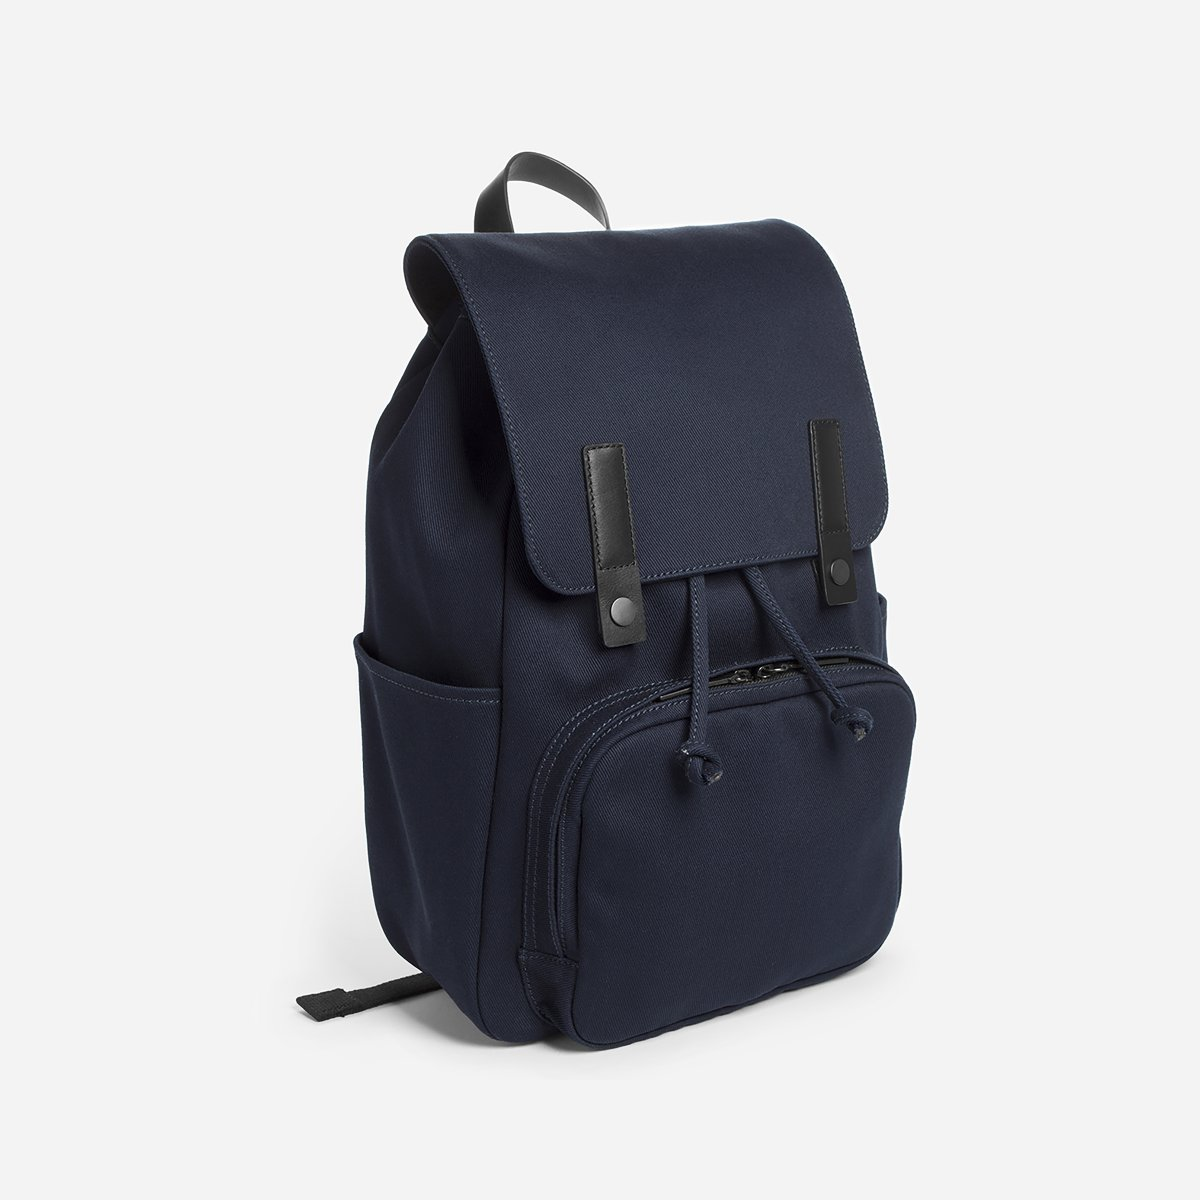 The Modern Snap Backpack | Everlane // Sustainable Valentine's Day Gifts For Men on The Good Trade